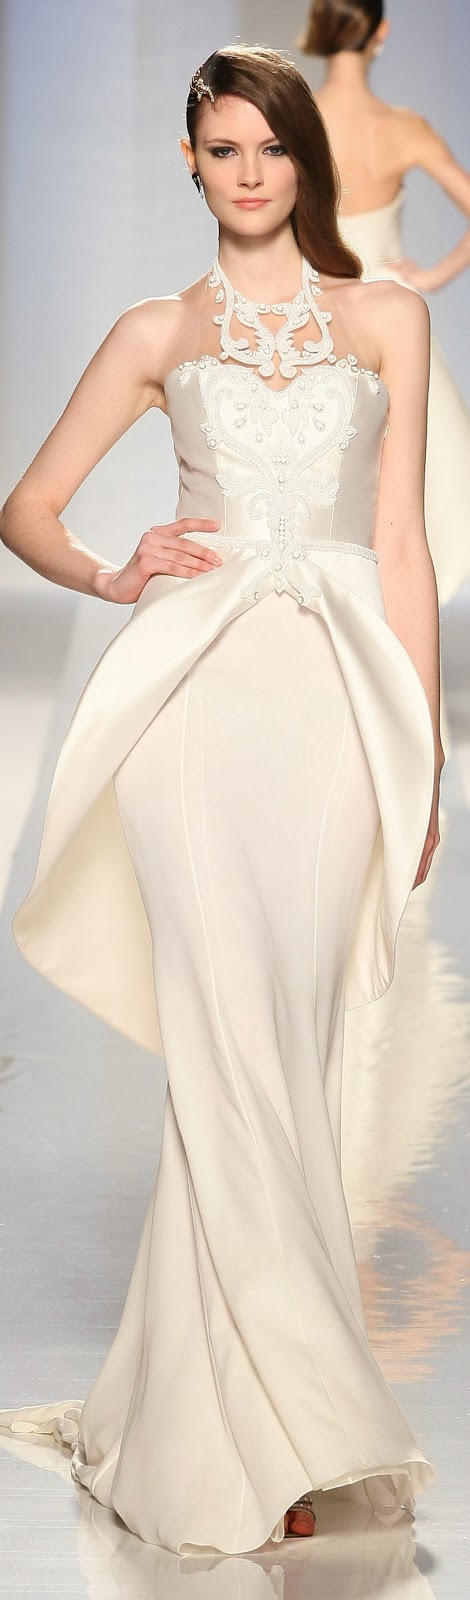 Gorgeous White Long Dress, USA Fashion 2013